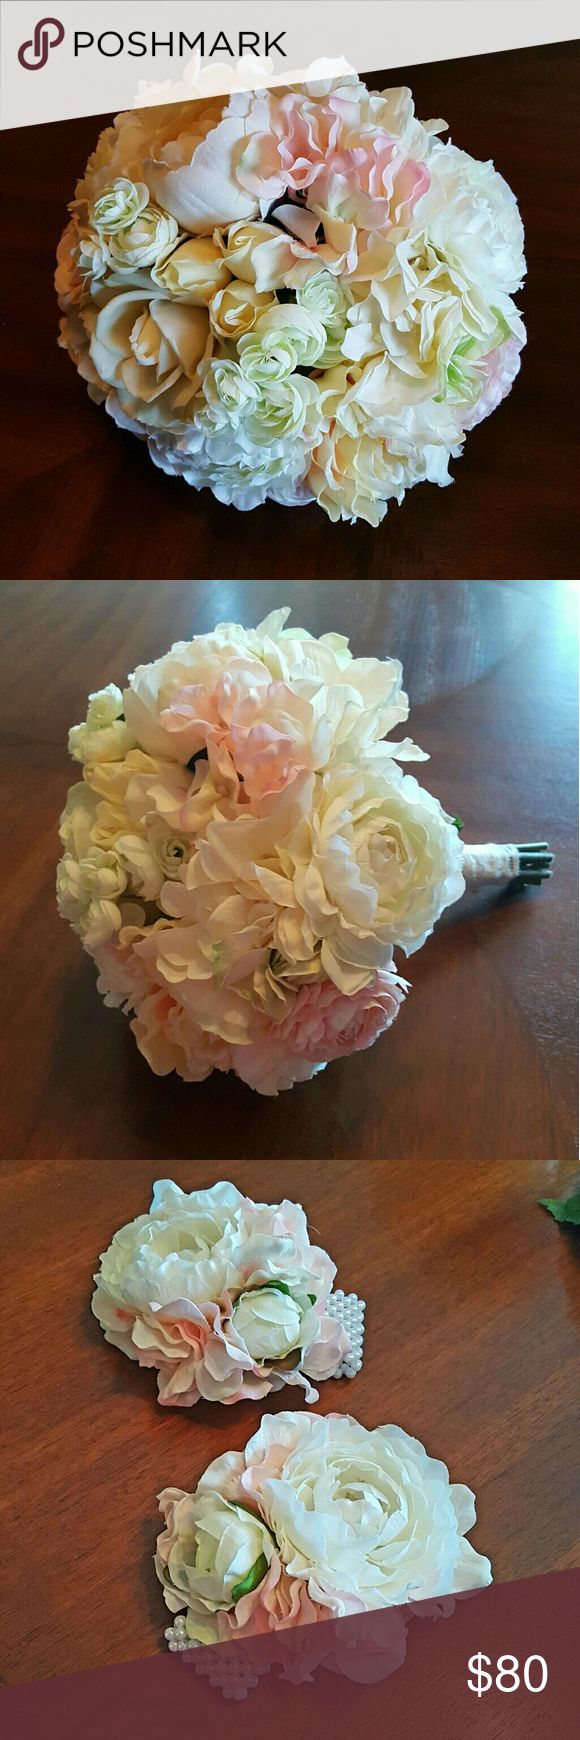 NEW HANDMADE SILK FLOWER BRIDAL BOUQUET 5 PIECES! One of a kind, handmade bridal bouquet grouping made of realistic pink and ivory silk peonies, roses, and hydrangeas. Included is the bridal bouquet, a smaller bridesmaid's bouquet, 2 mother's bracelet corsages with faux pearls, and a boutonniere for the groom. The large bridal bouquet measures approx 12 in in diameter and the maid-of-honor bouquet is approx 10 in across. Stems are wrapped in white lace with pearl pins. These were specially…